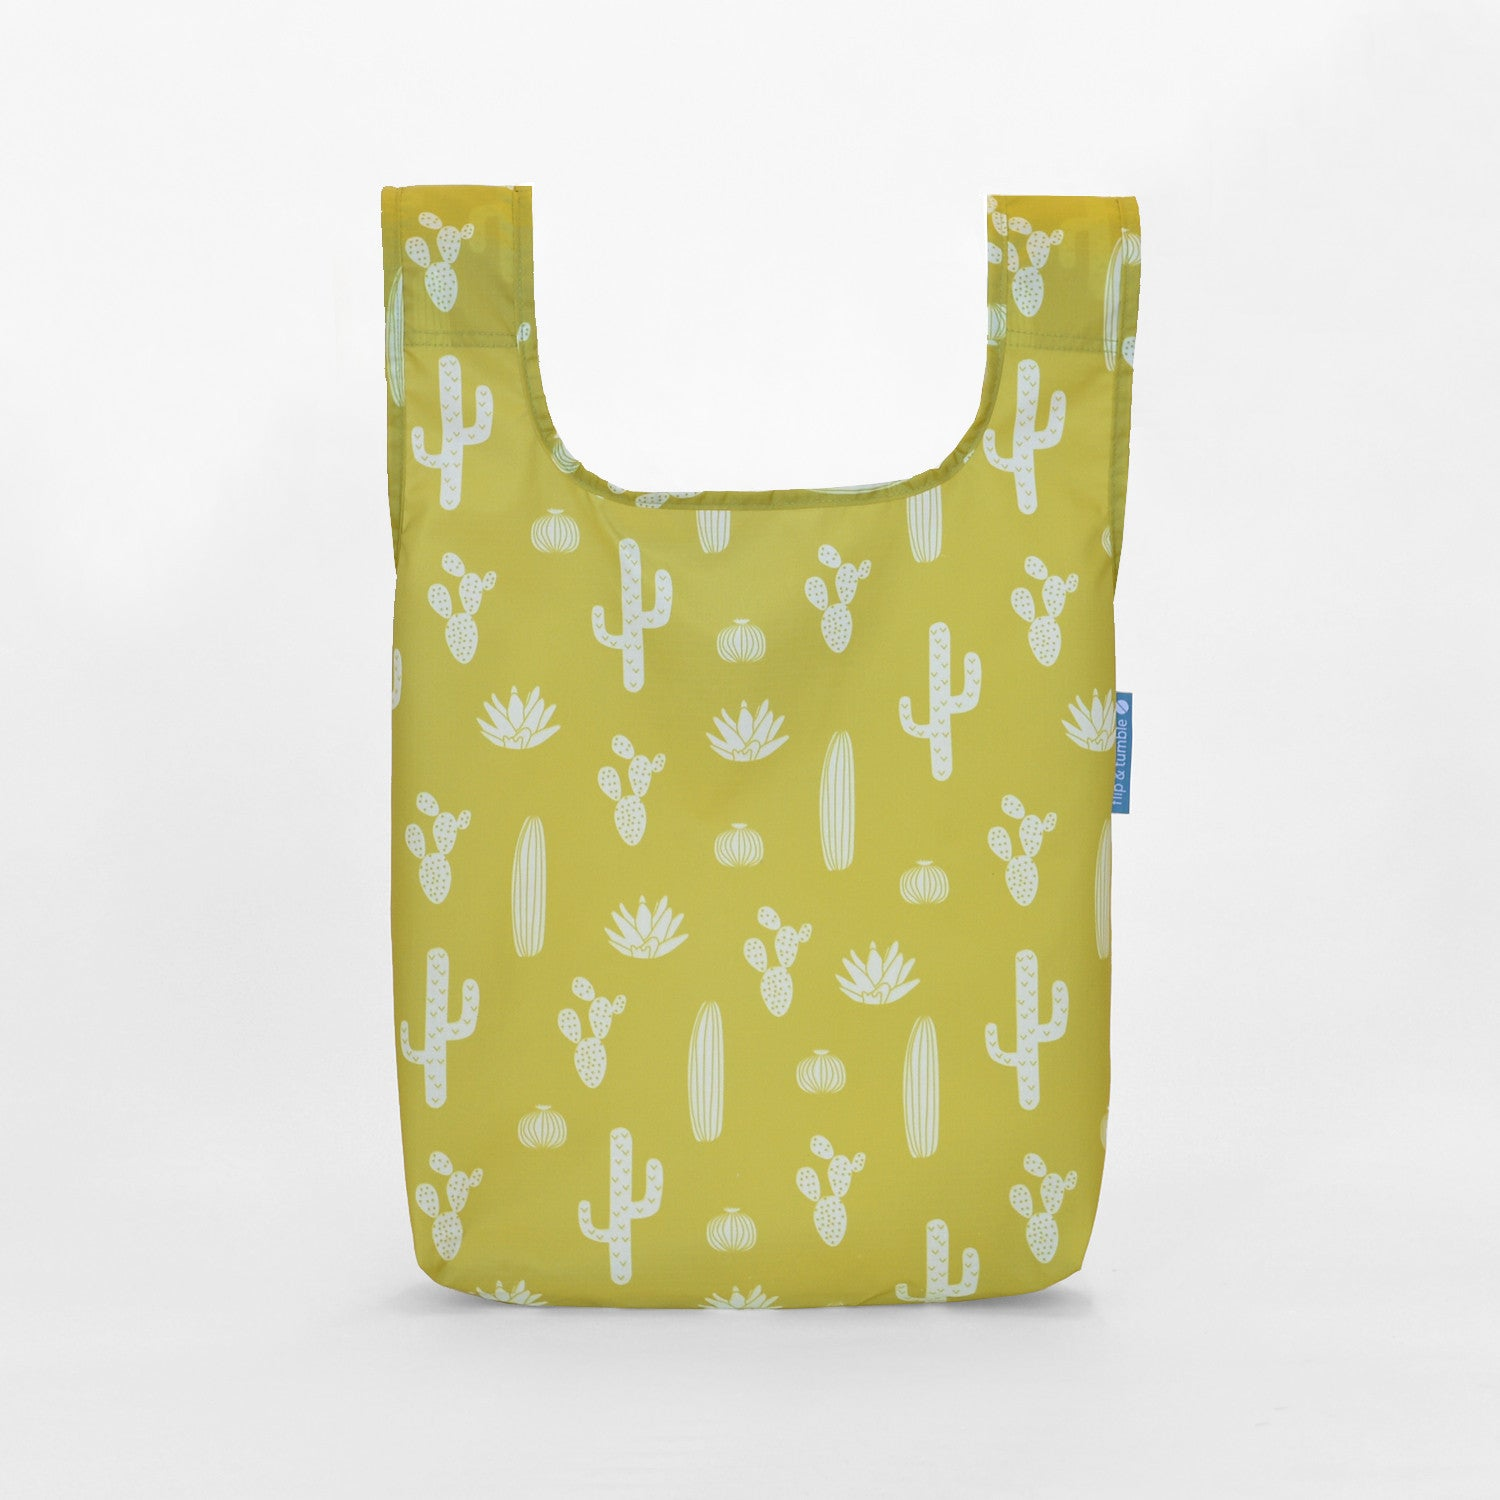 mojave reusable grocery shopping bag